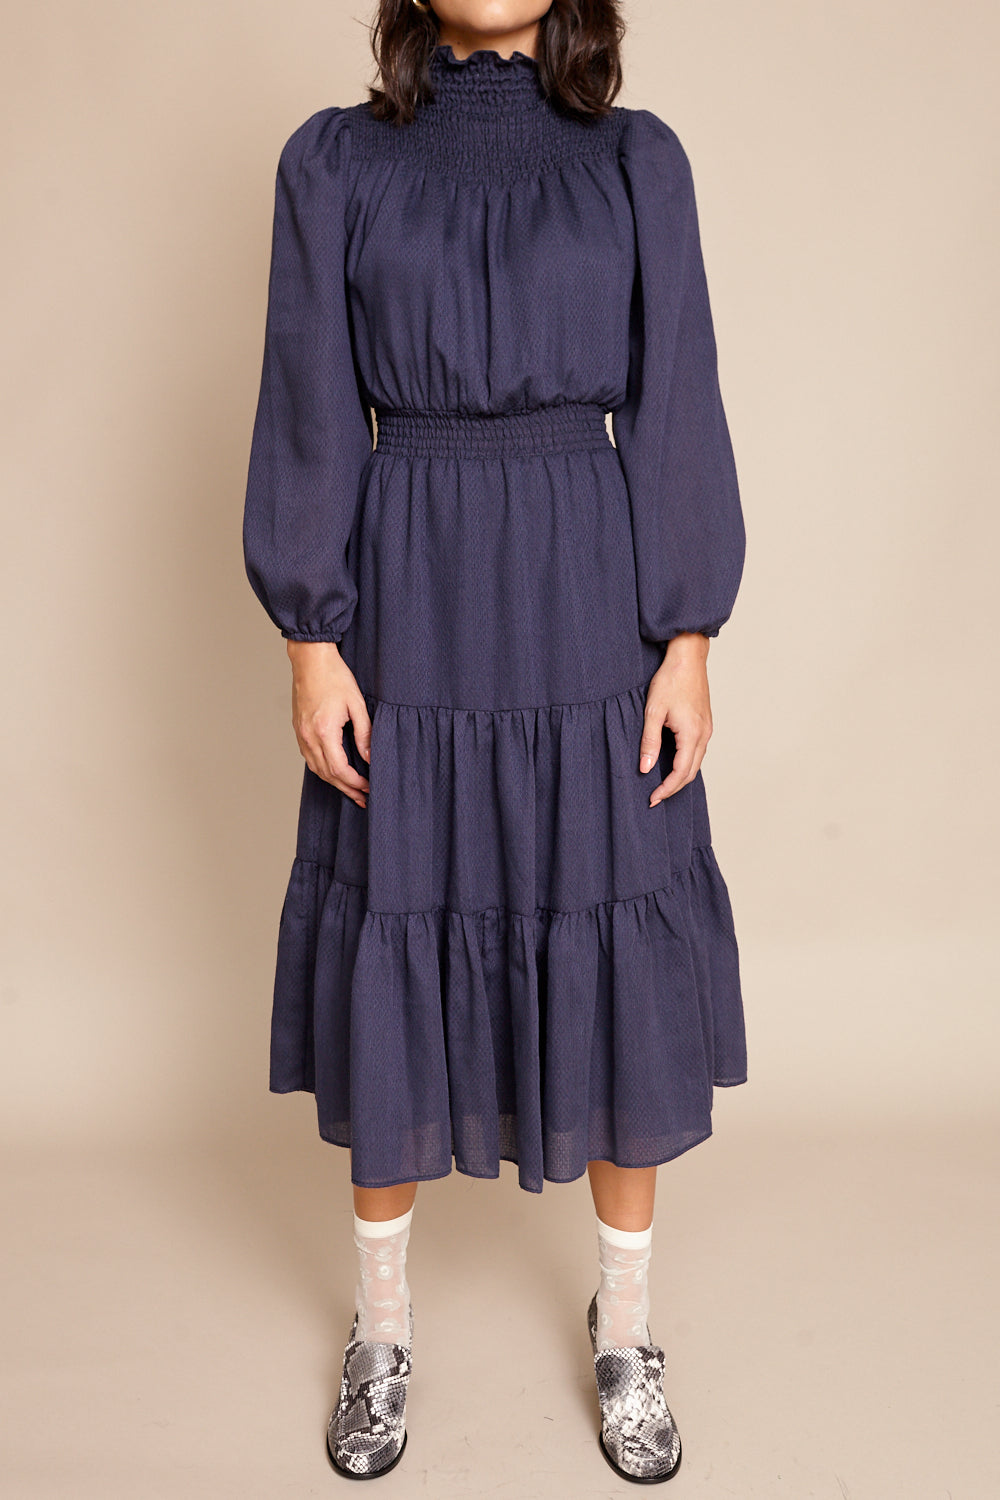 Daisy Dress in Navy